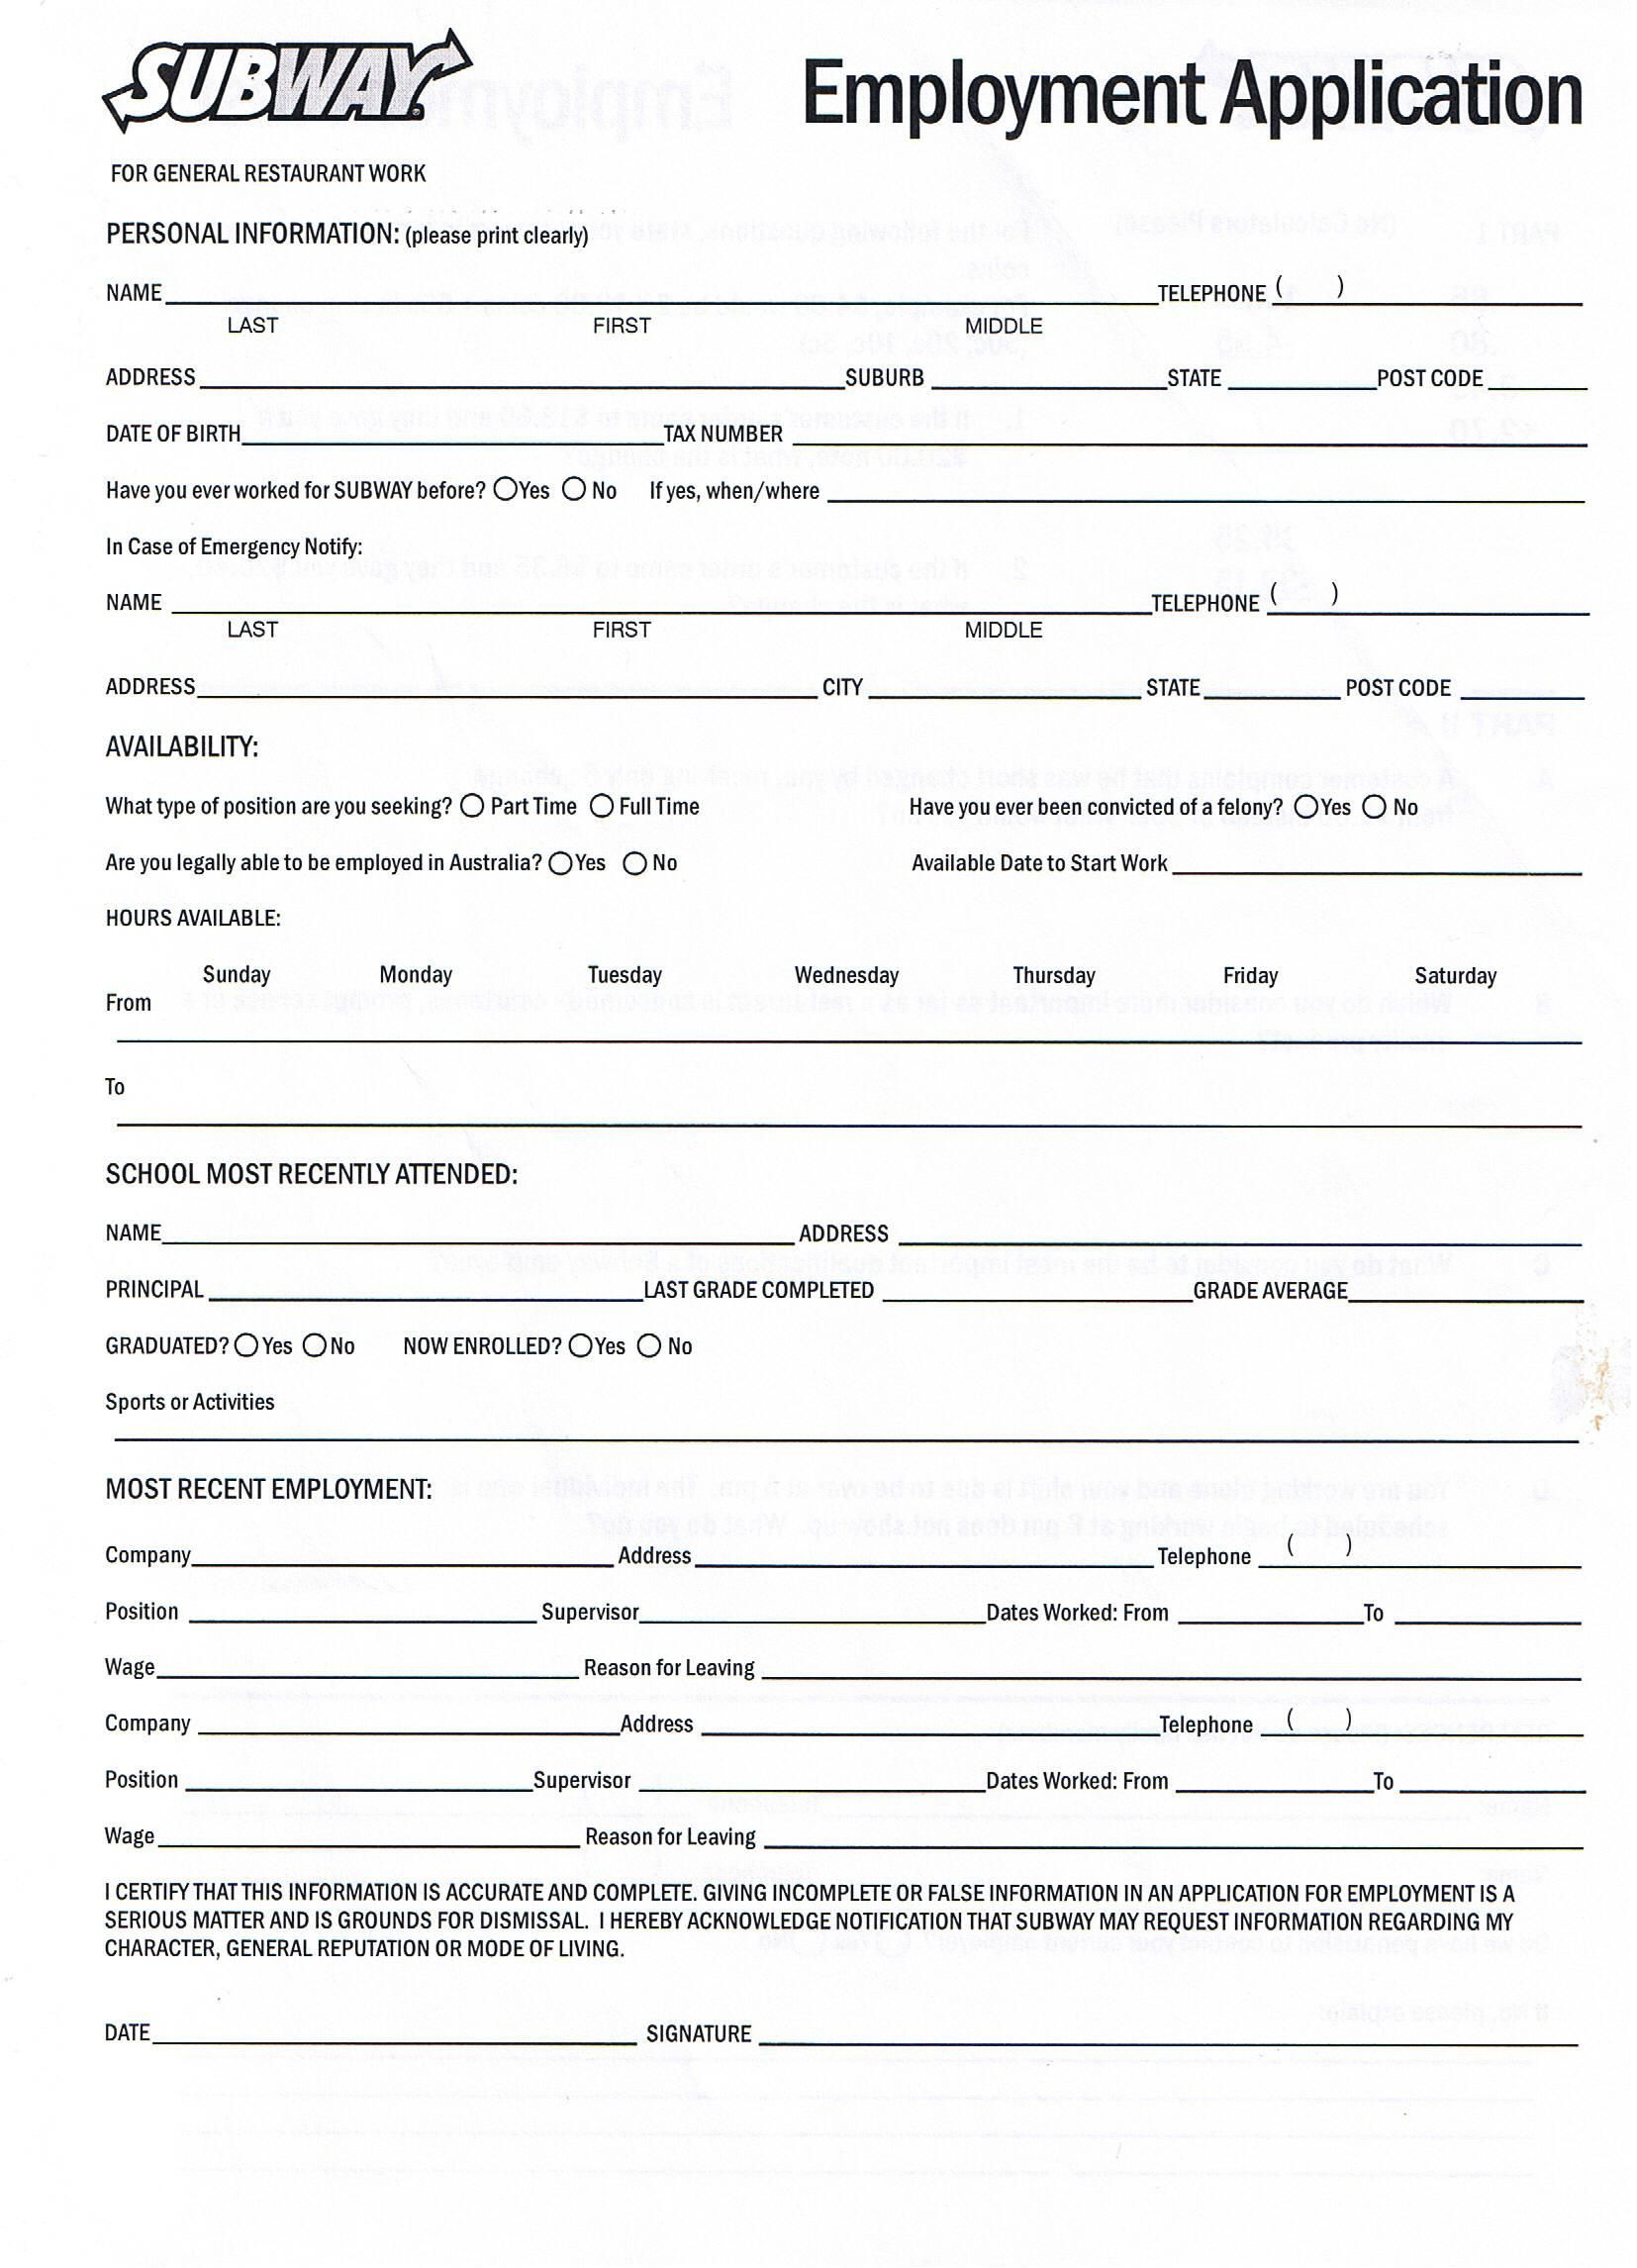 Printable Application Form | Printable Job Application Forms Online Forms Download And Print